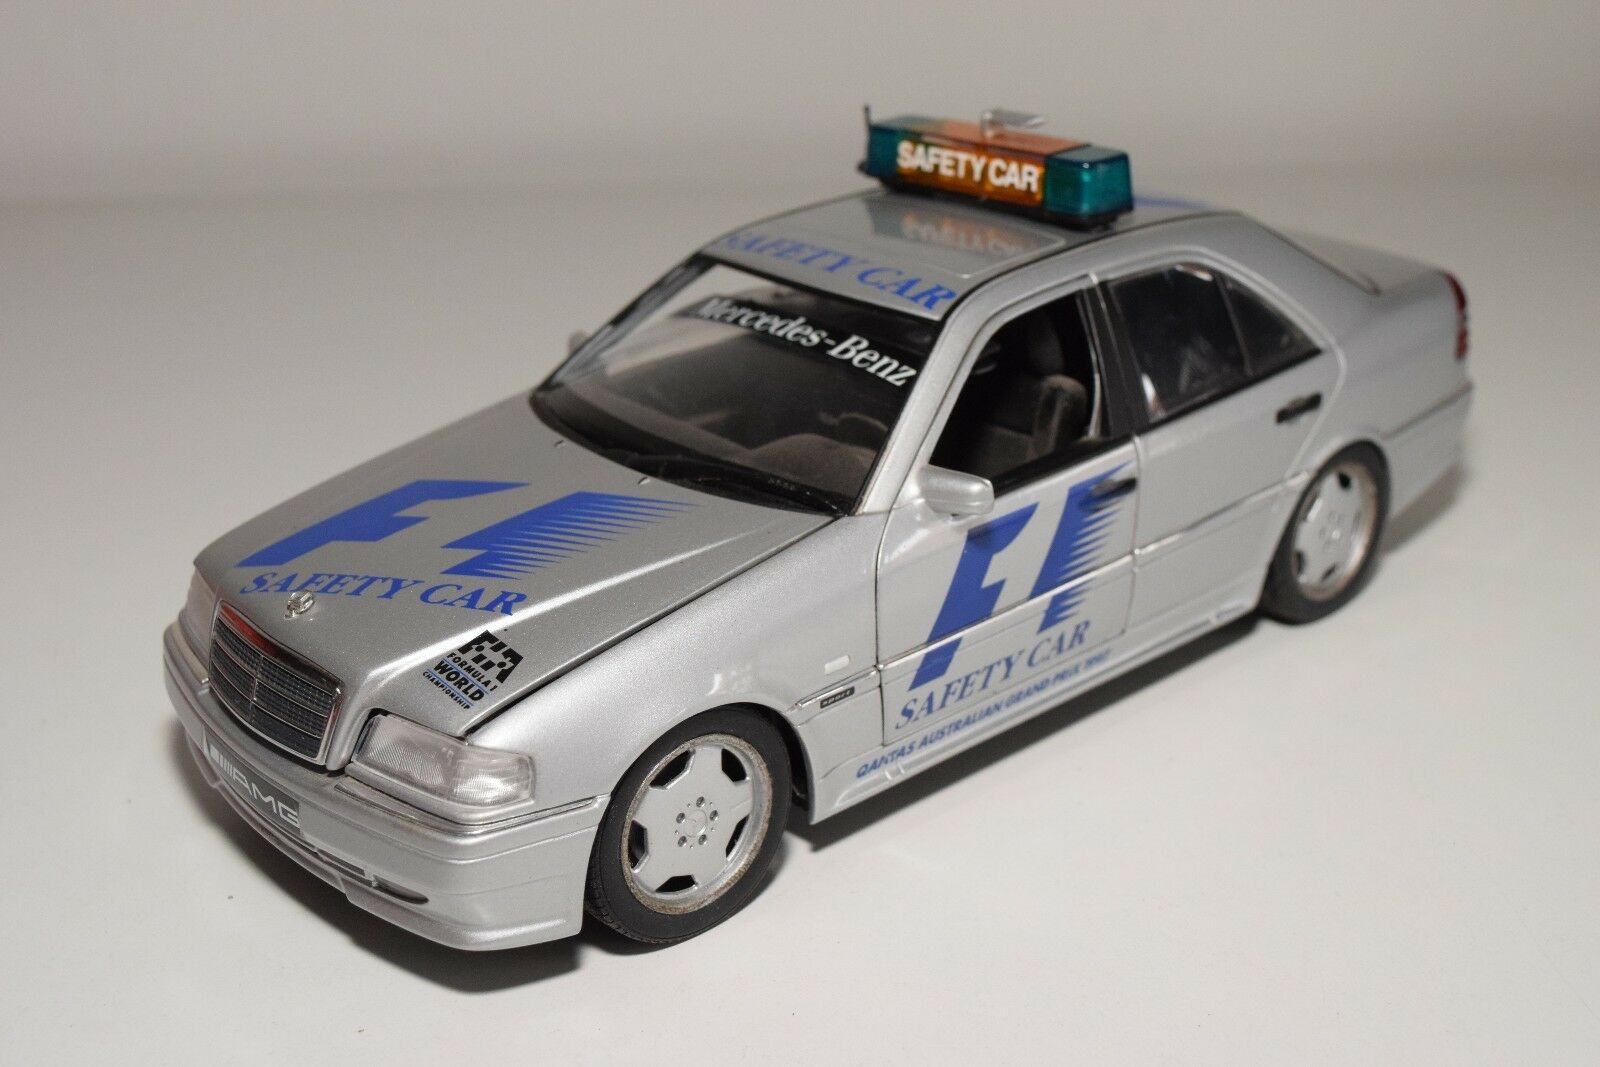 X 1 18 UT MODELS MERCEDES-BENZ C-CLASS C36 AMG SAFETY CAR EXCELLENT CONDITION